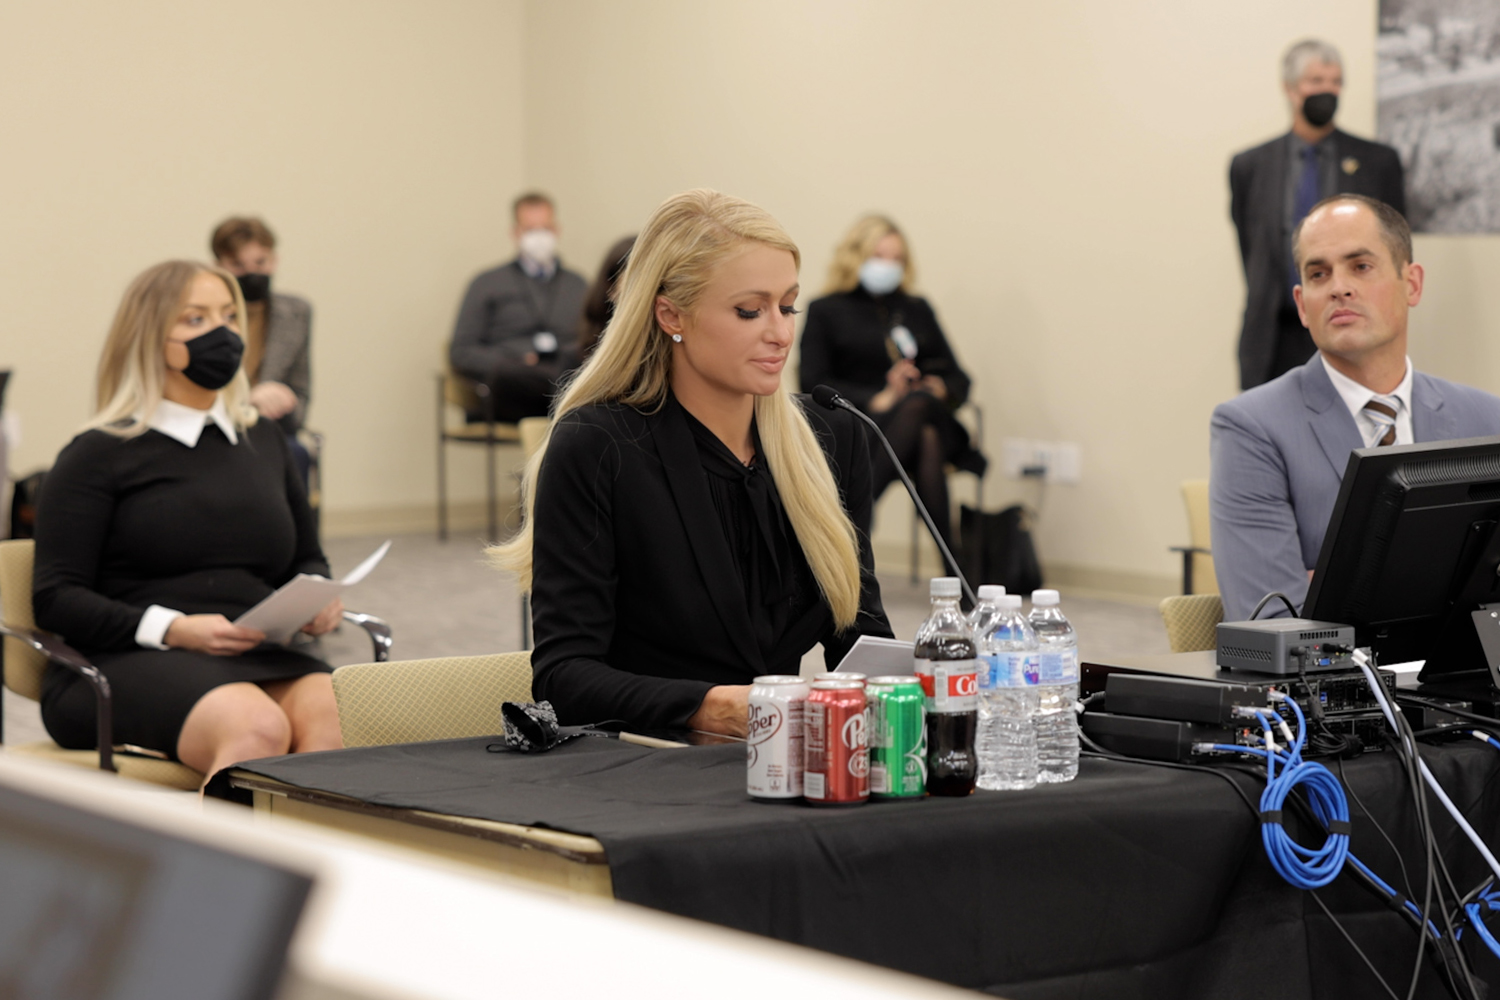 Paris Hilton testifying in Utah court last month